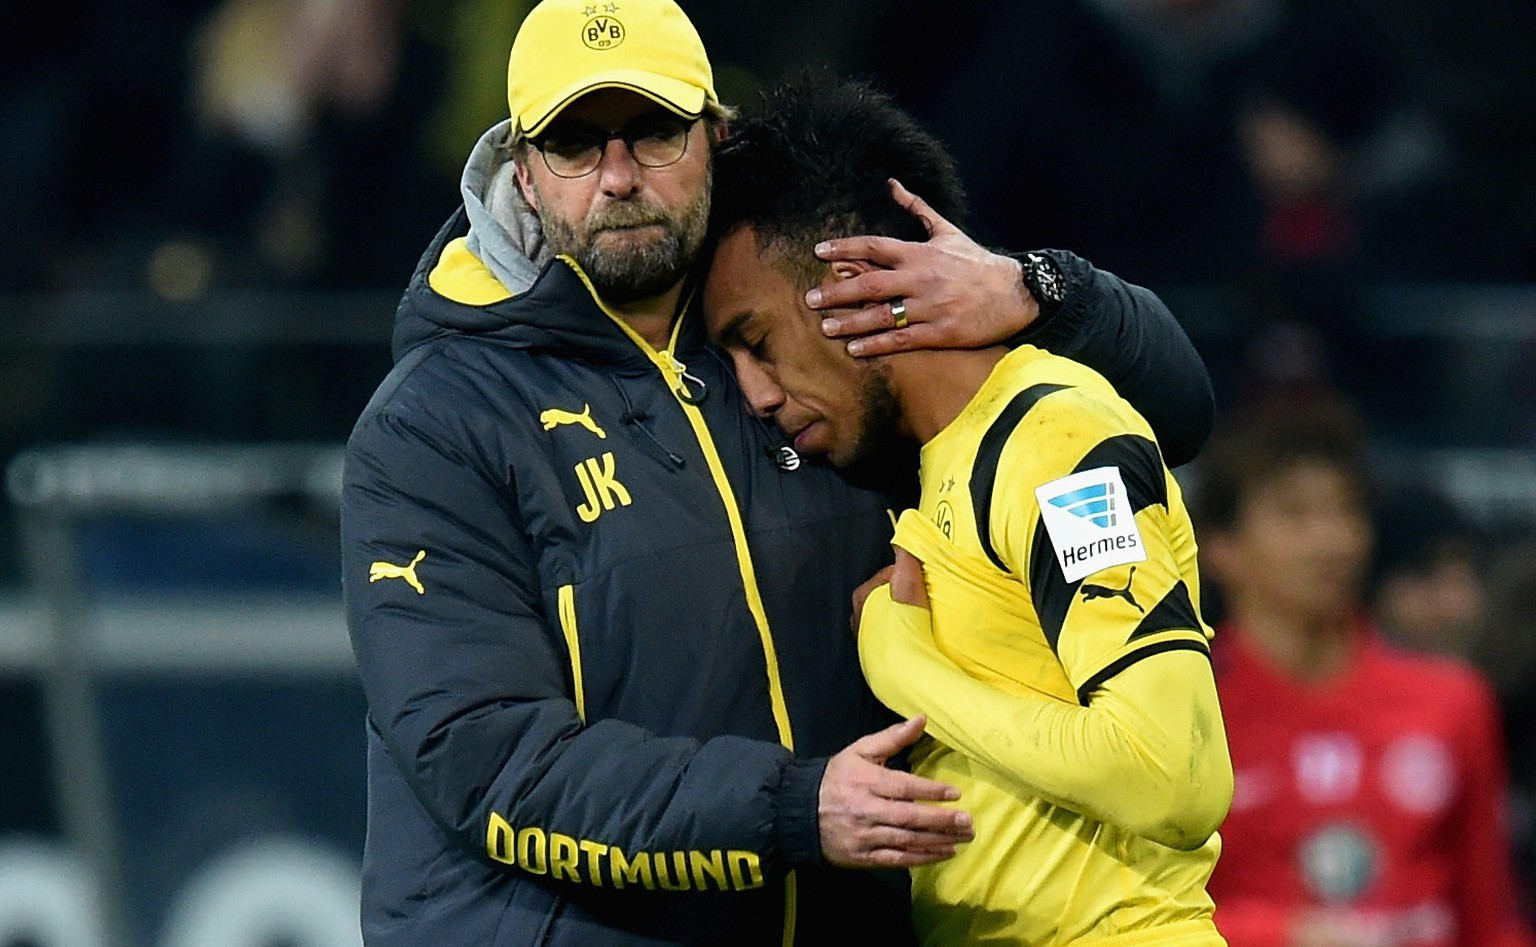 FRANKFURT AM MAIN, GERMANY - NOVEMBER 30:  Juergen Klopp of Borussia Dortmund and Pierre-Emerick Aubameyang look dejected after the Bundesliga match between Eintracht Frankfurt and Borussia Dortmund at Commerzbank-Arena on November 30, 2014 in Frankfurt am Main, Germany.  (Photo by Matthias Hangst/Bongarts/Getty Images)